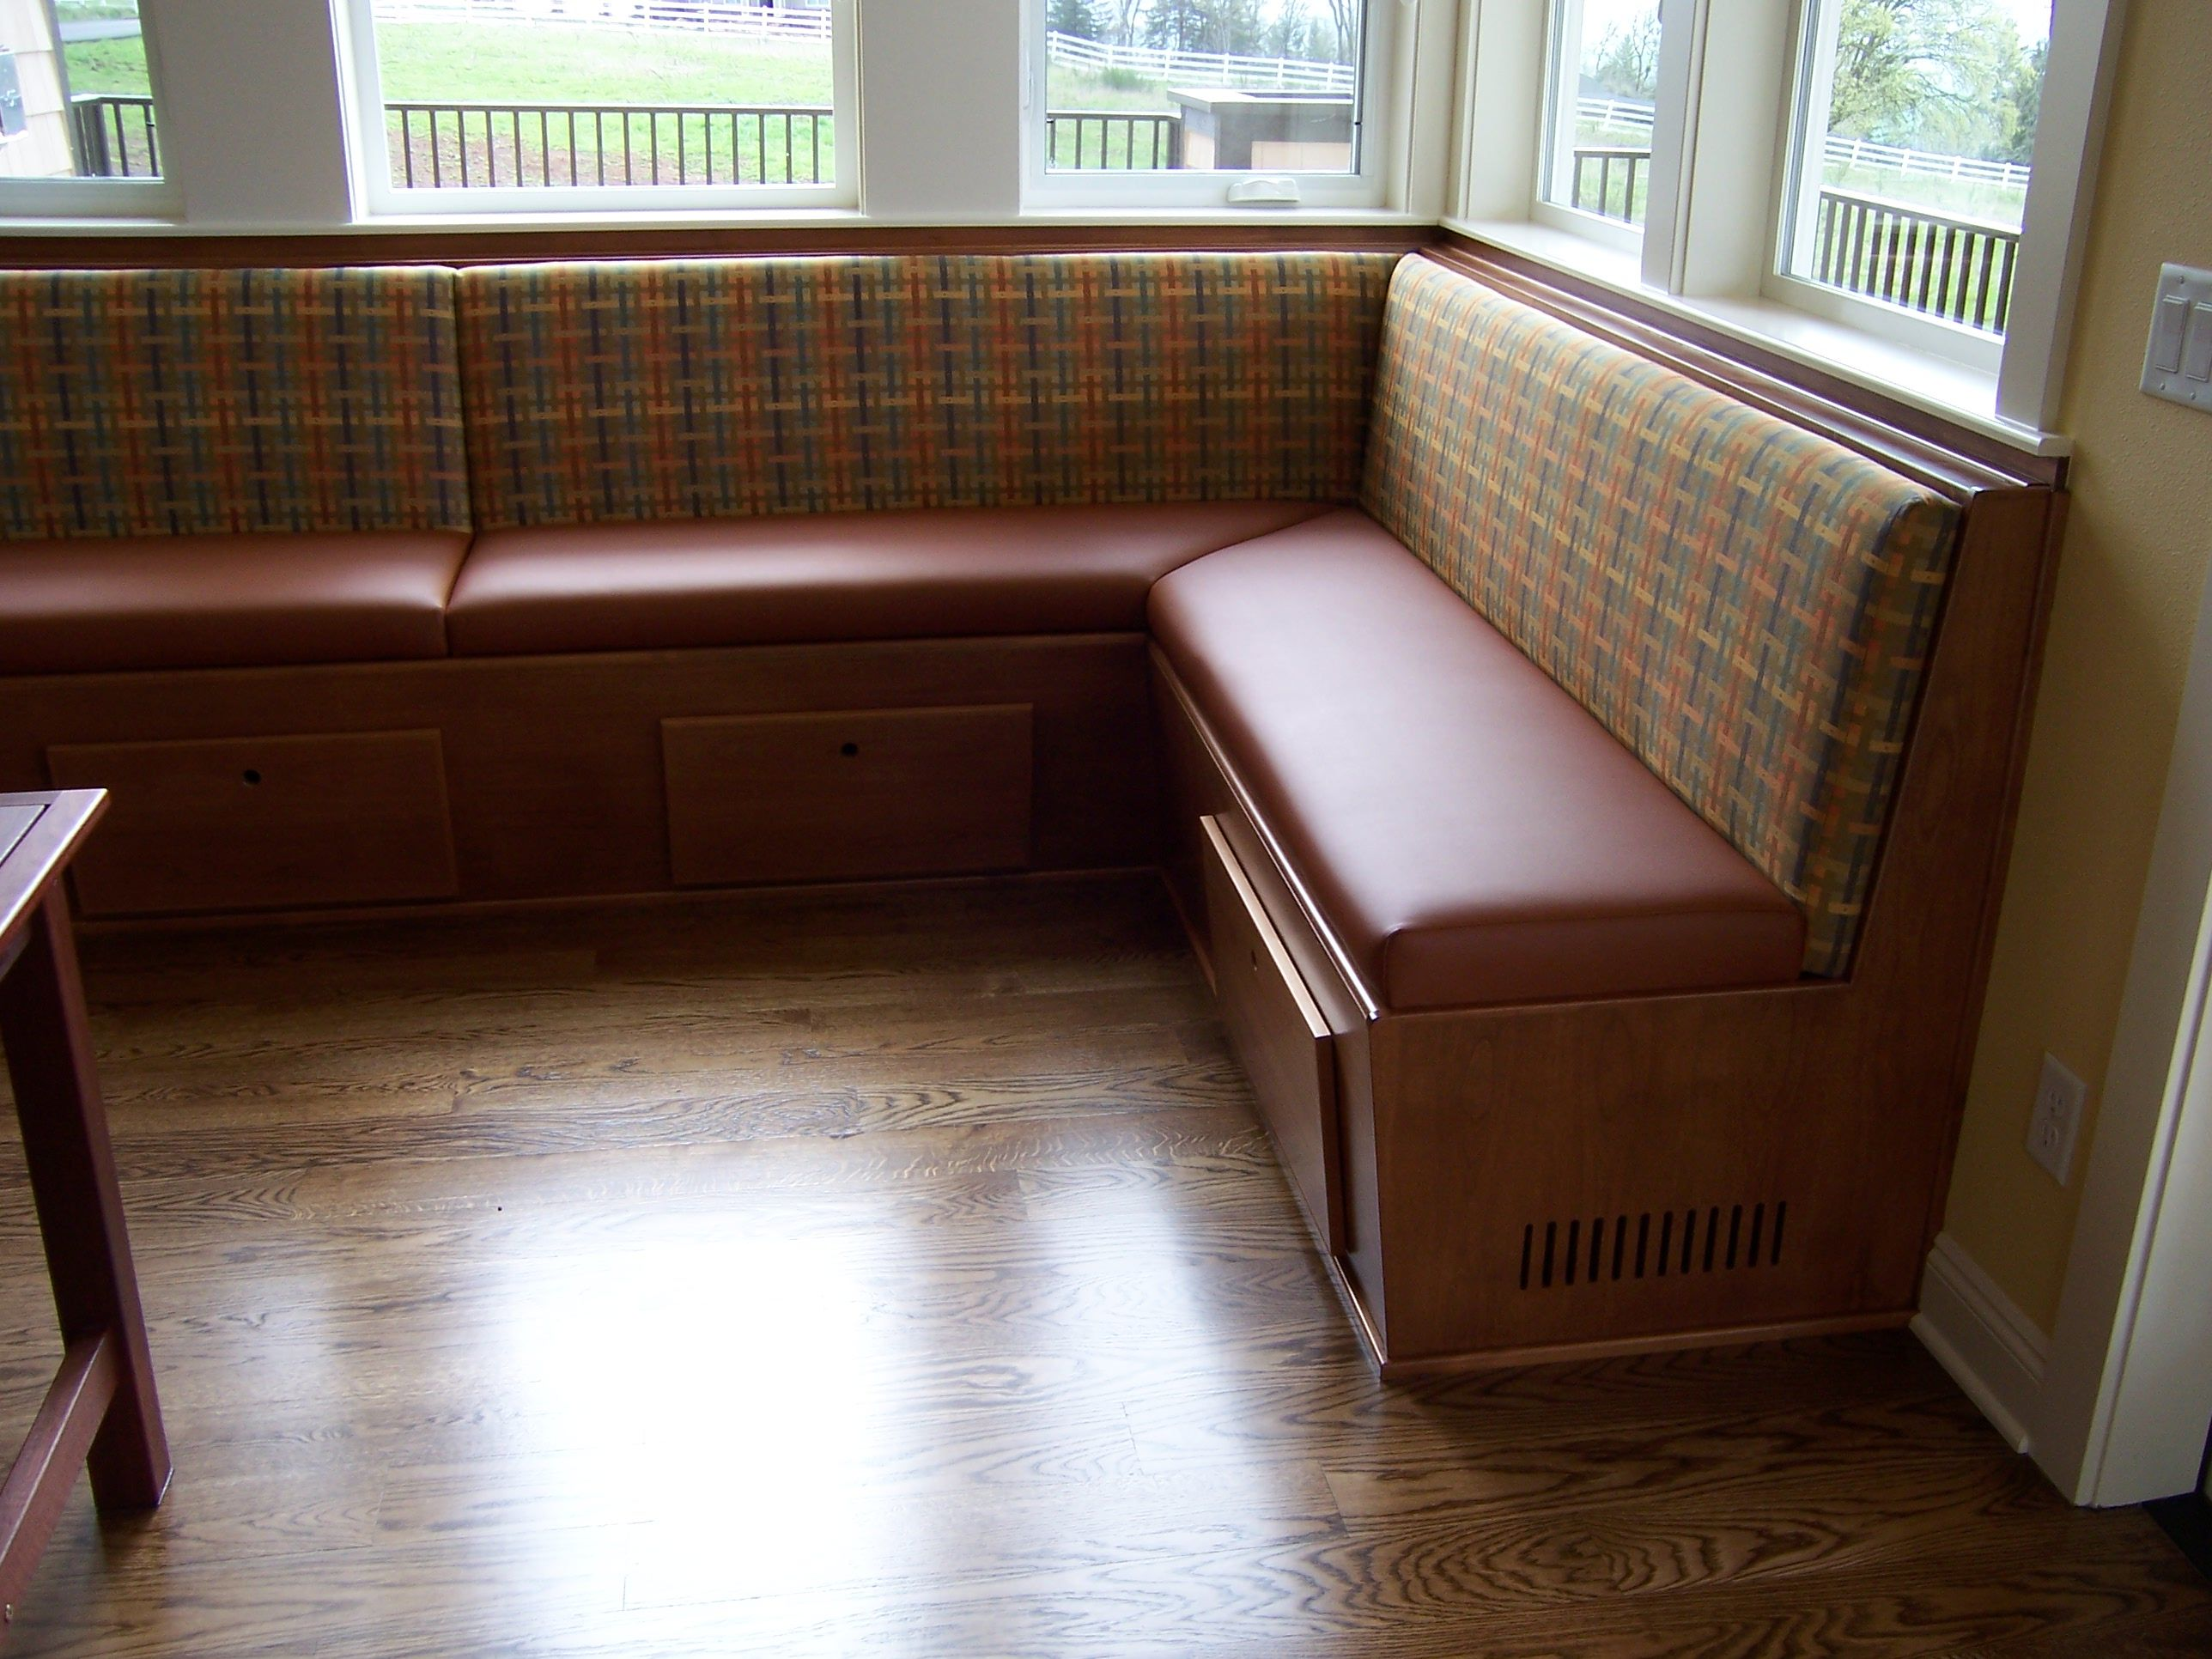 Banquette Bench Adding Coziness And Warmth To Your Kitchen